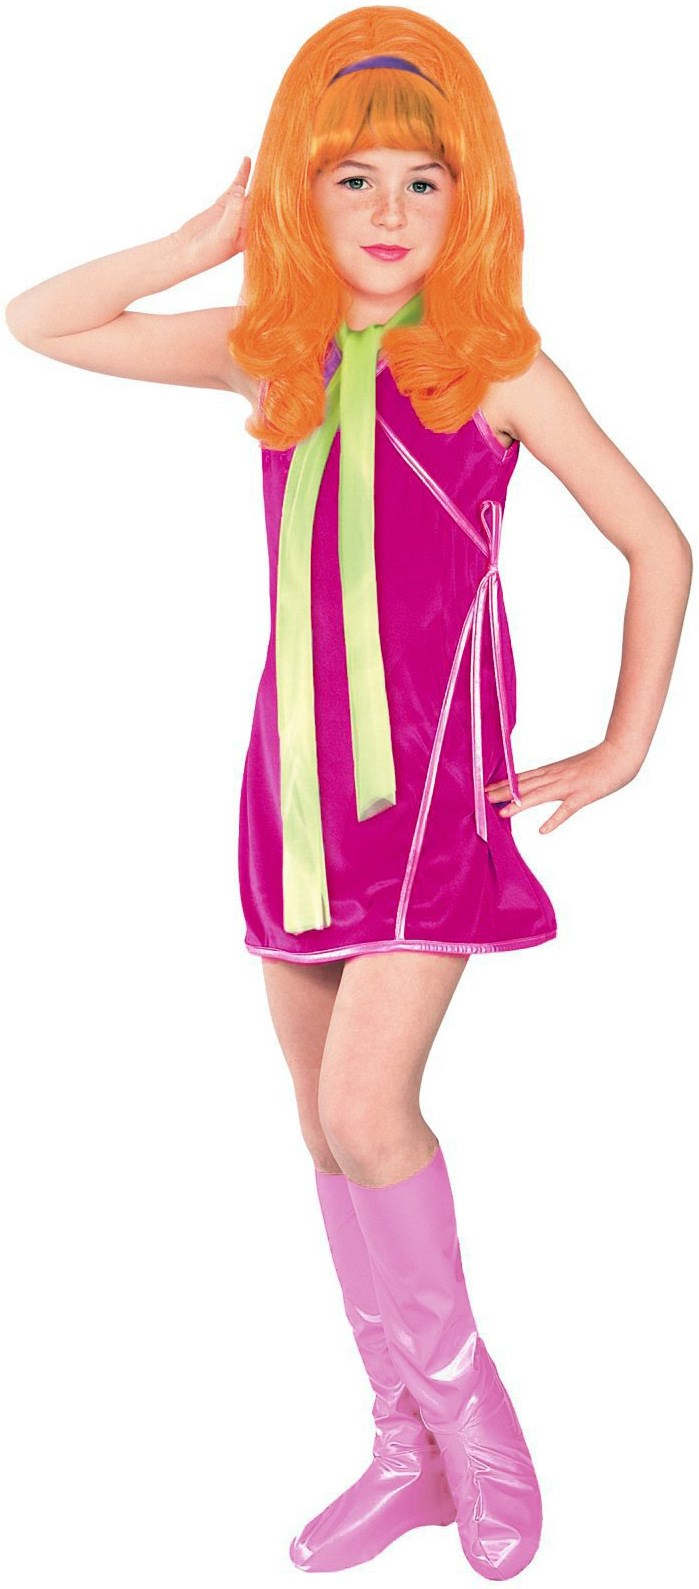 Scooby doo daphne child costume - Scooby doo daphne ...